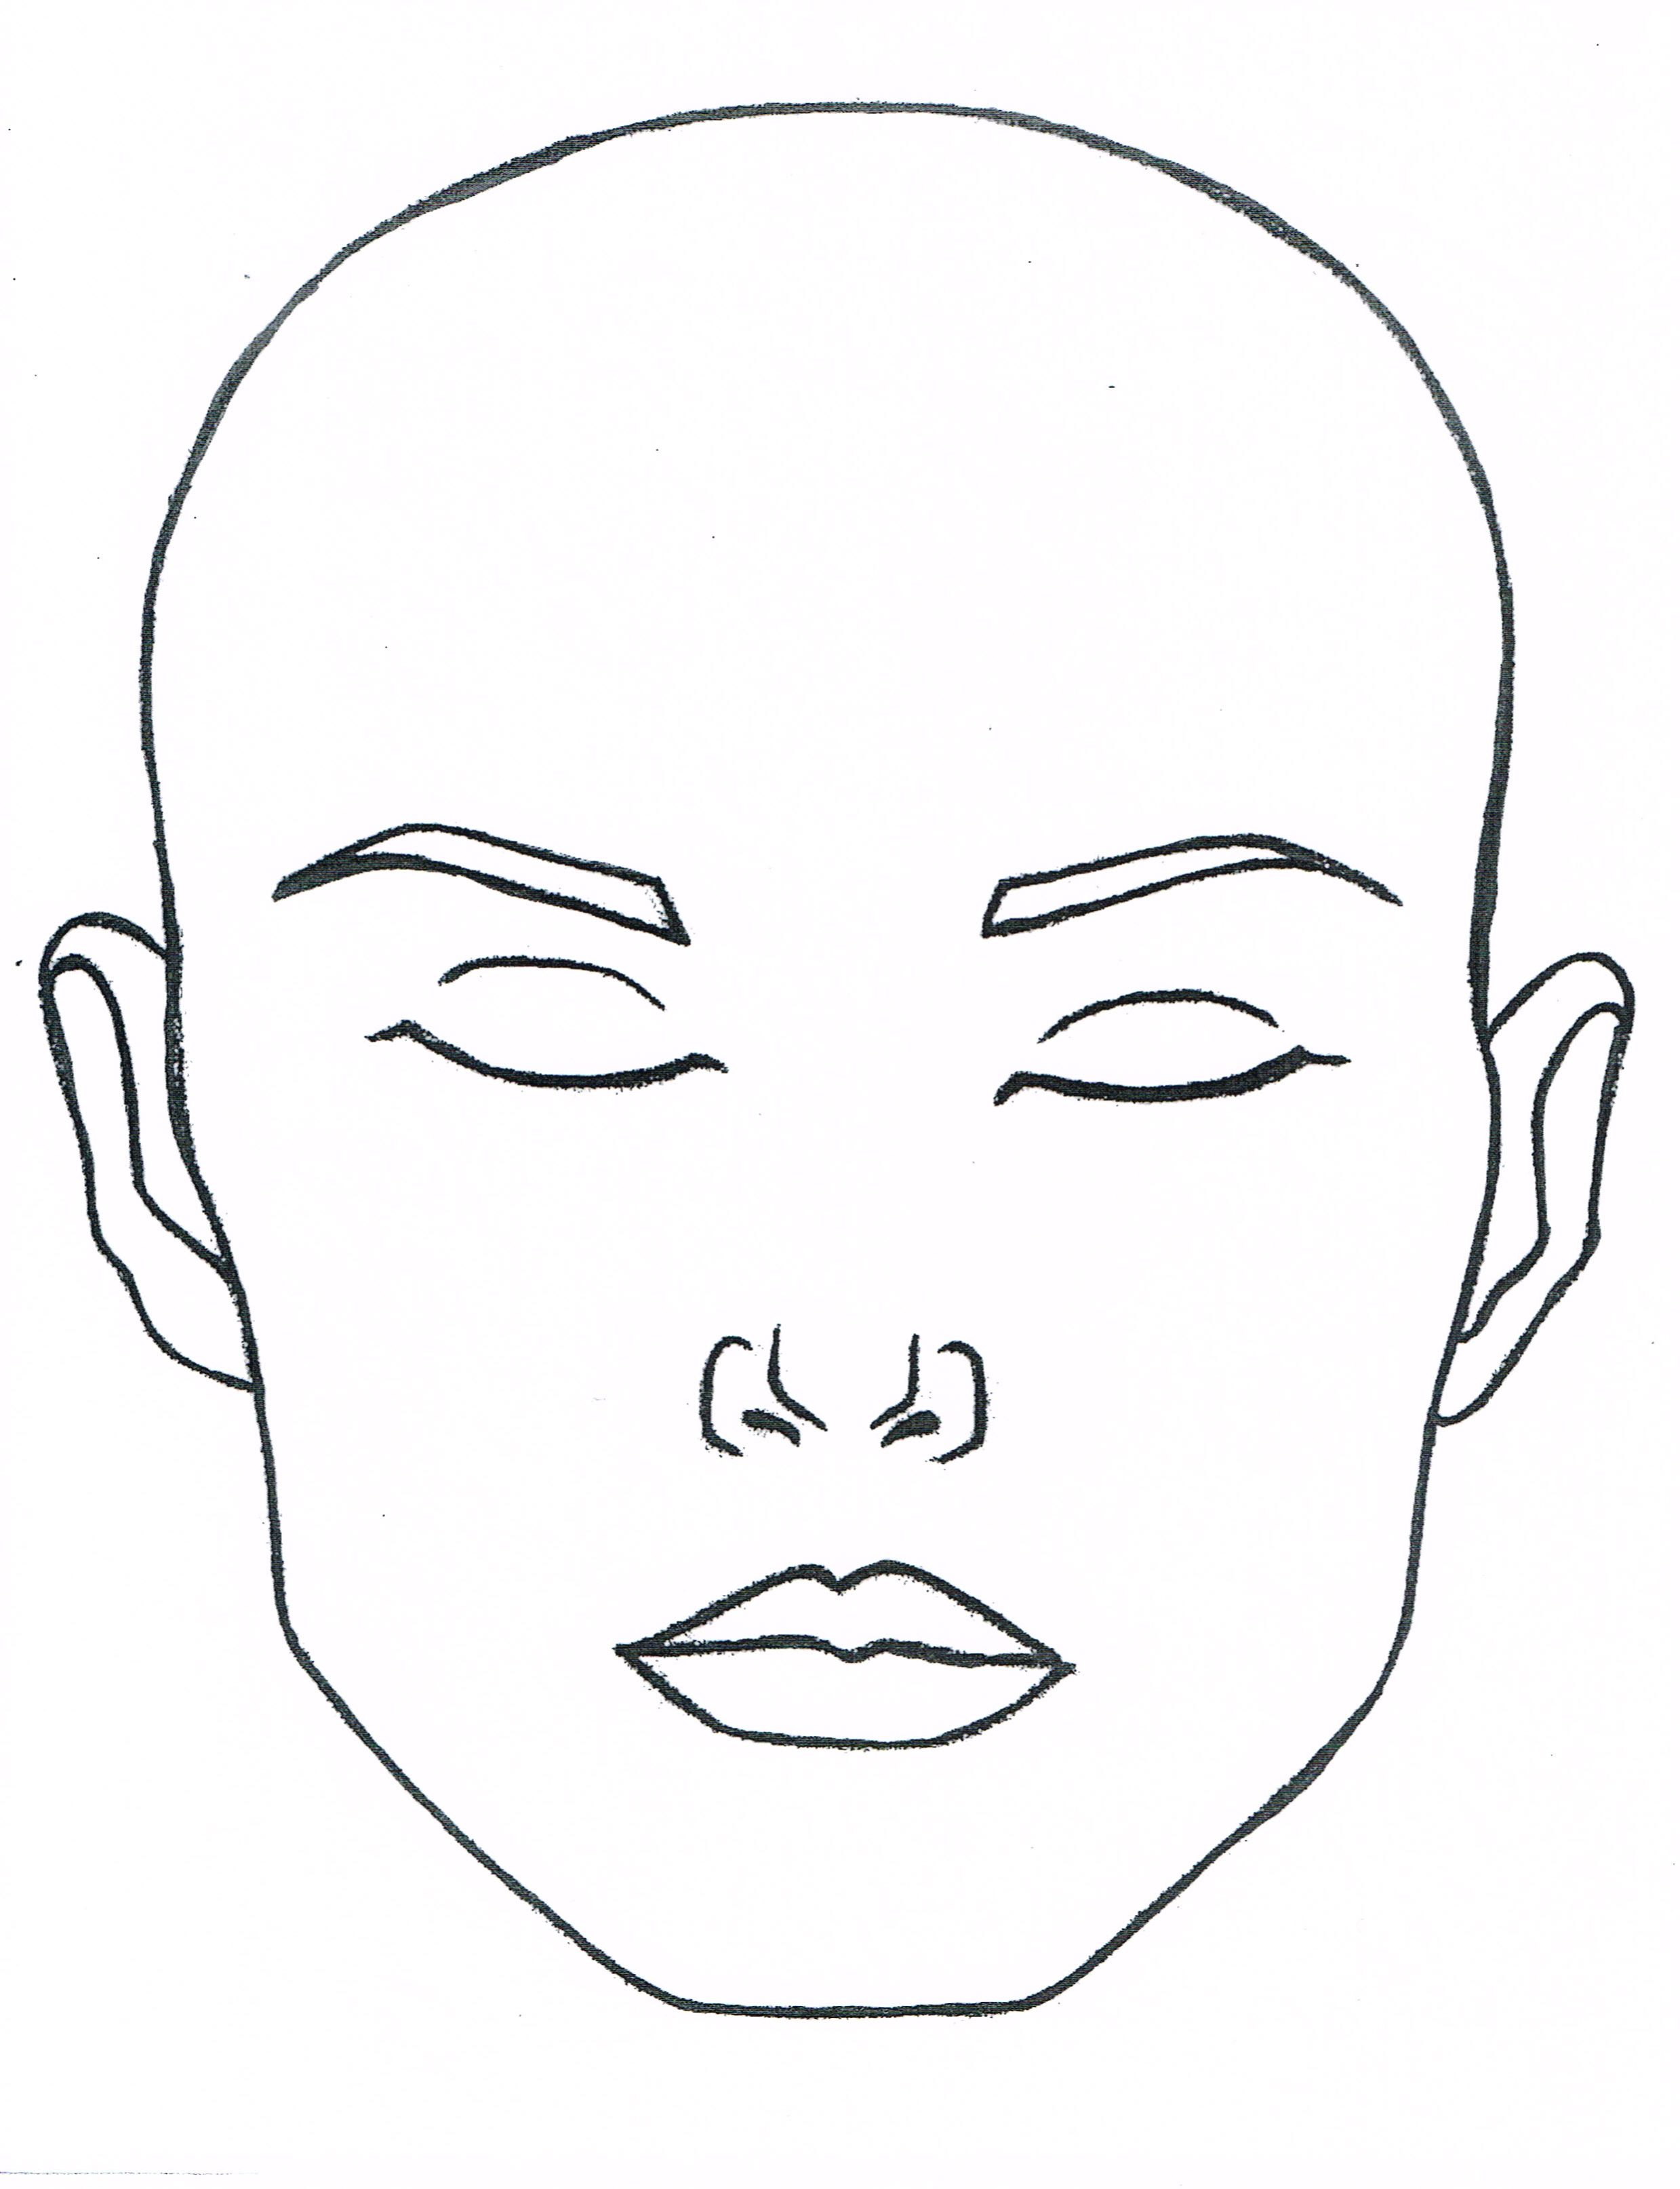 Blank Closed Eyes Face To Print And Laminate Or Paint For